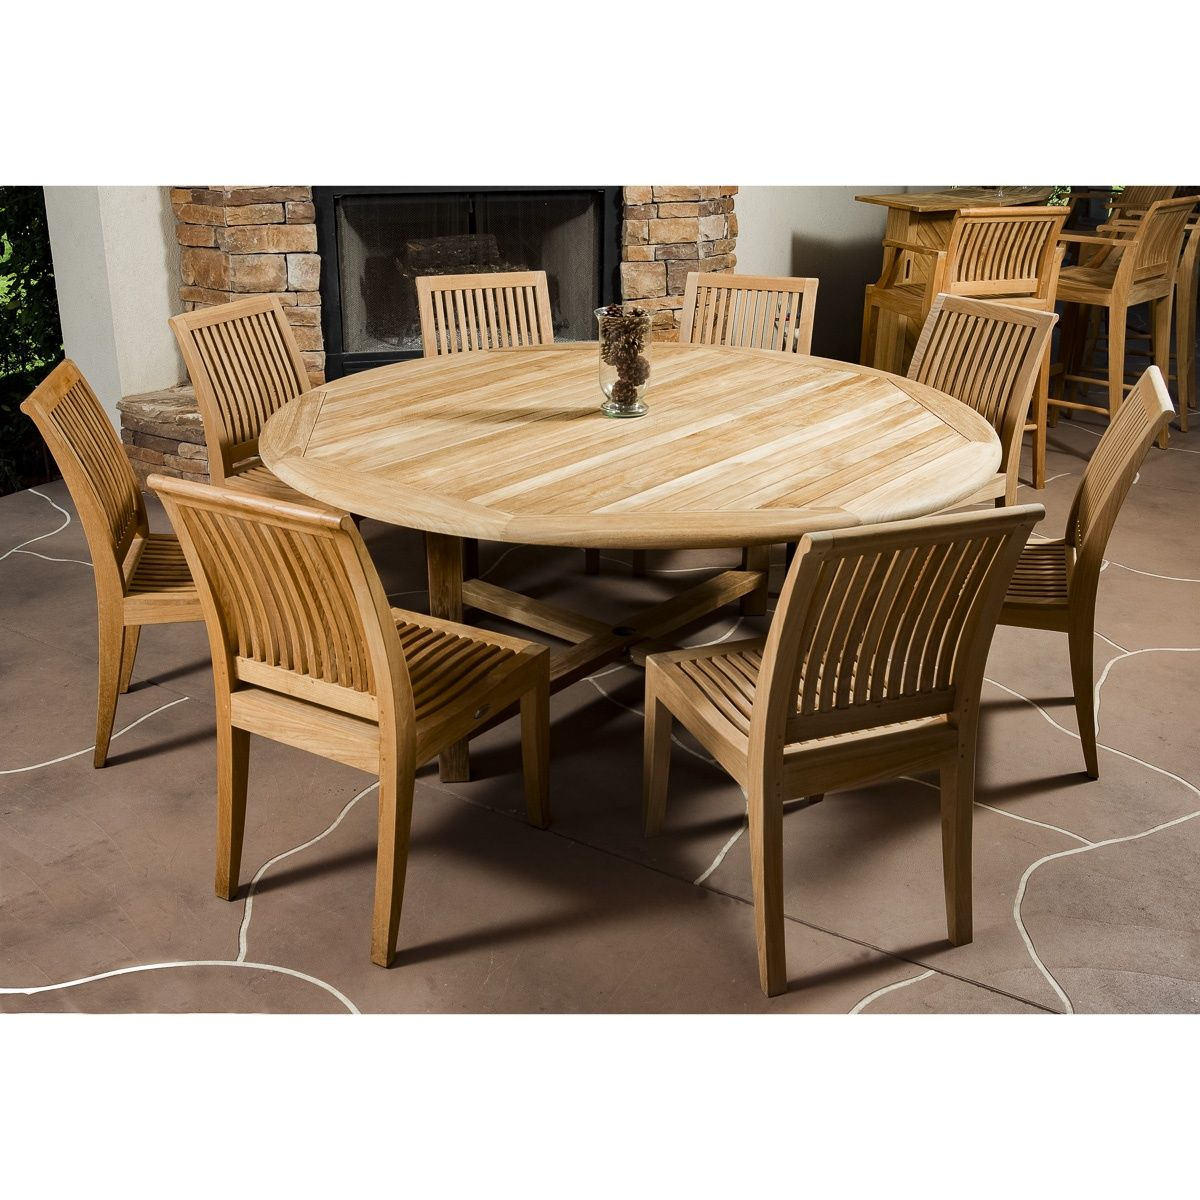 Round Table Patio Furniture Sets 9pc Teak Round Table Dining Set In 2019 Modern Teak Patio